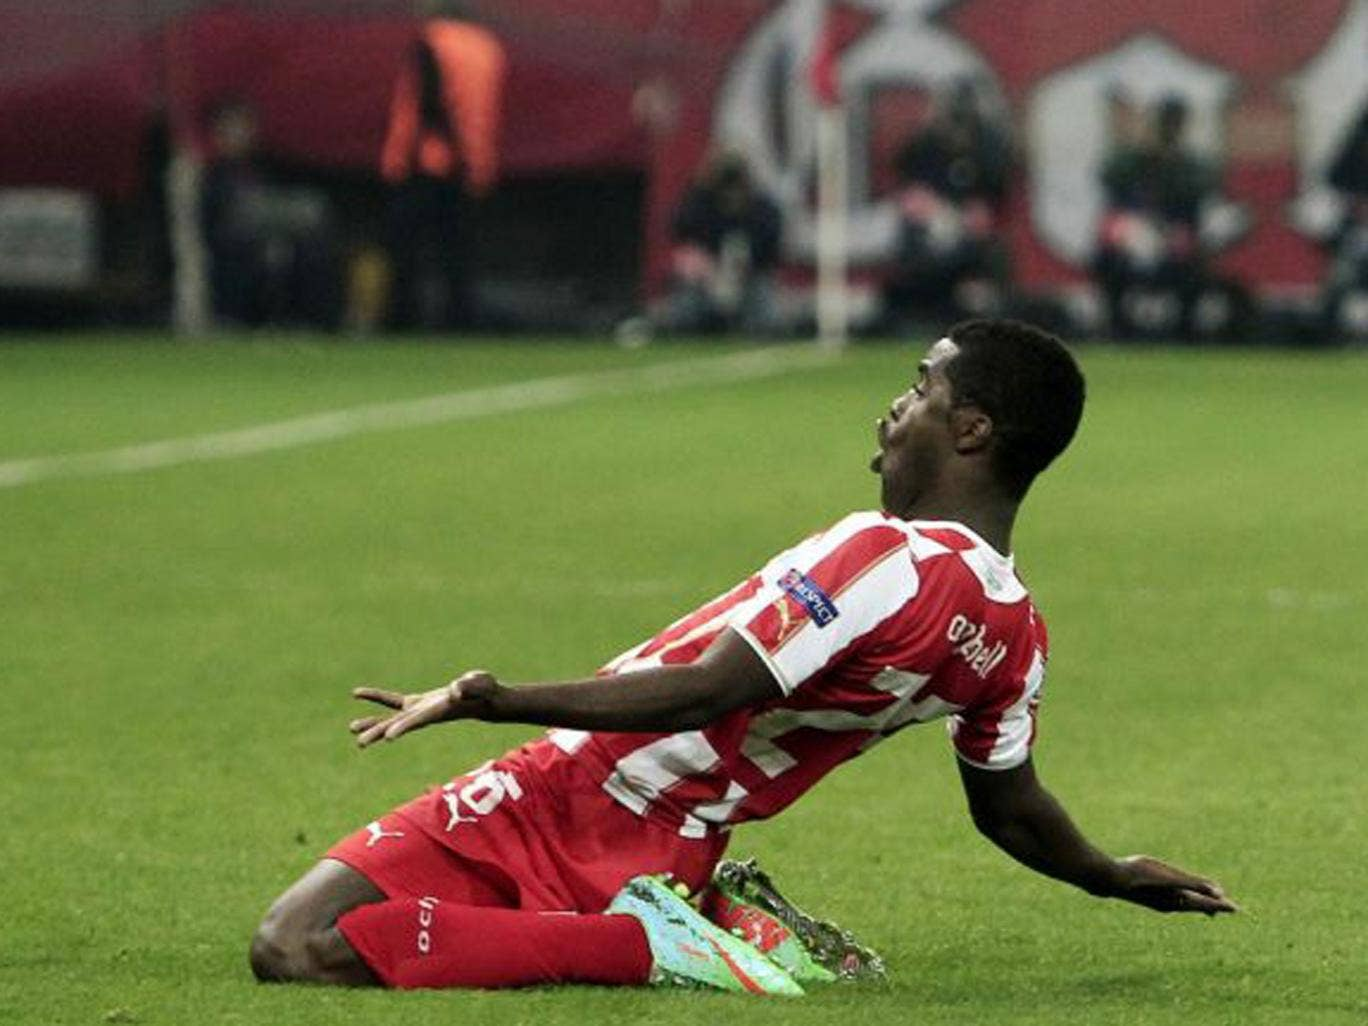 Joel Campbell, on loan from Arsenal, celebrates his goal...with more than a nod to Thierry Henry